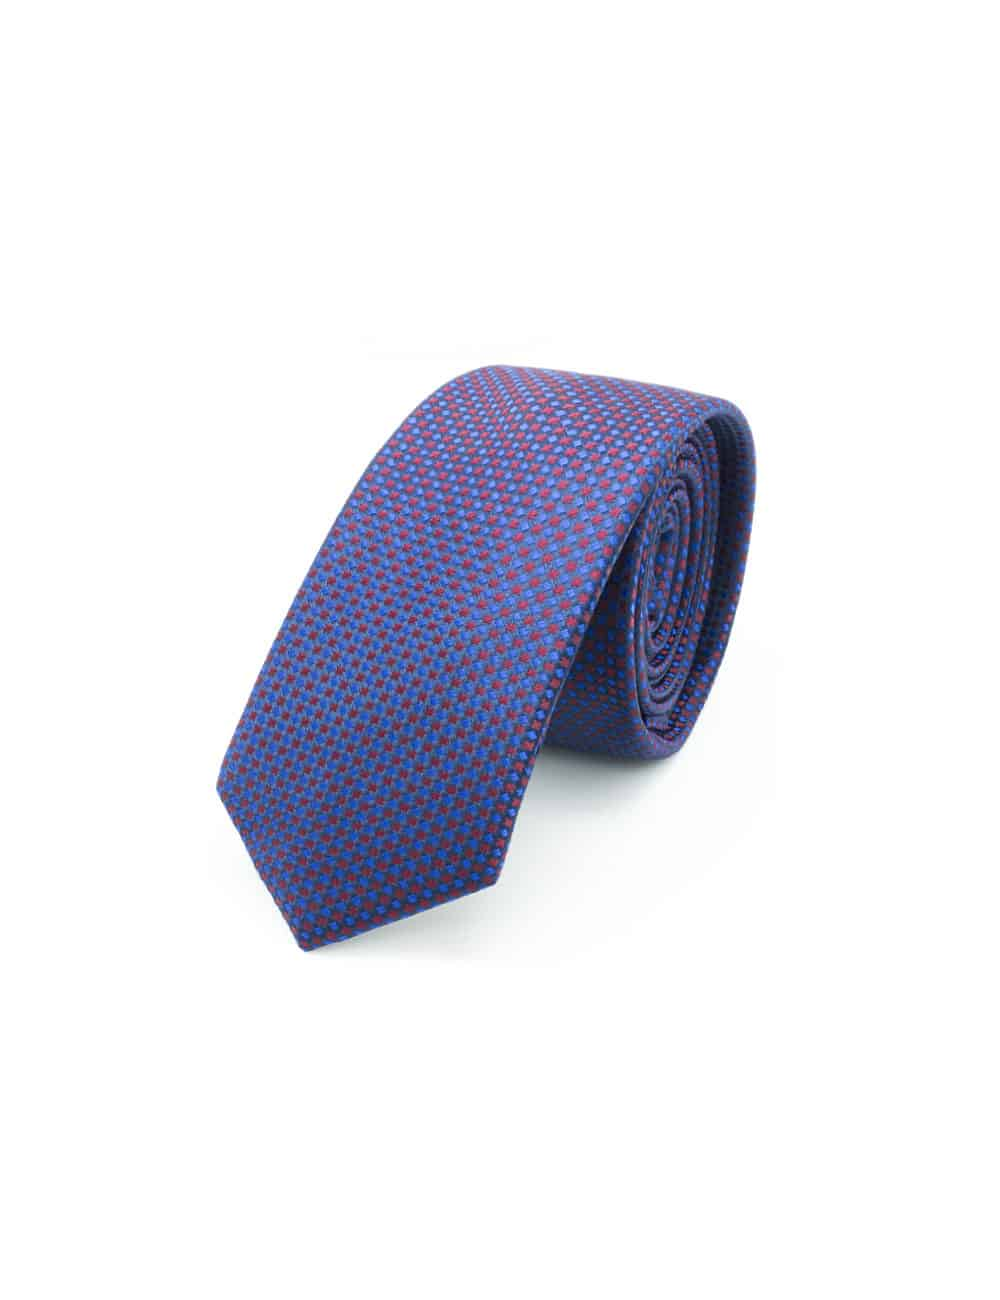 Blue with Red Pattern Spill Resist Woven Necktie NT36.9